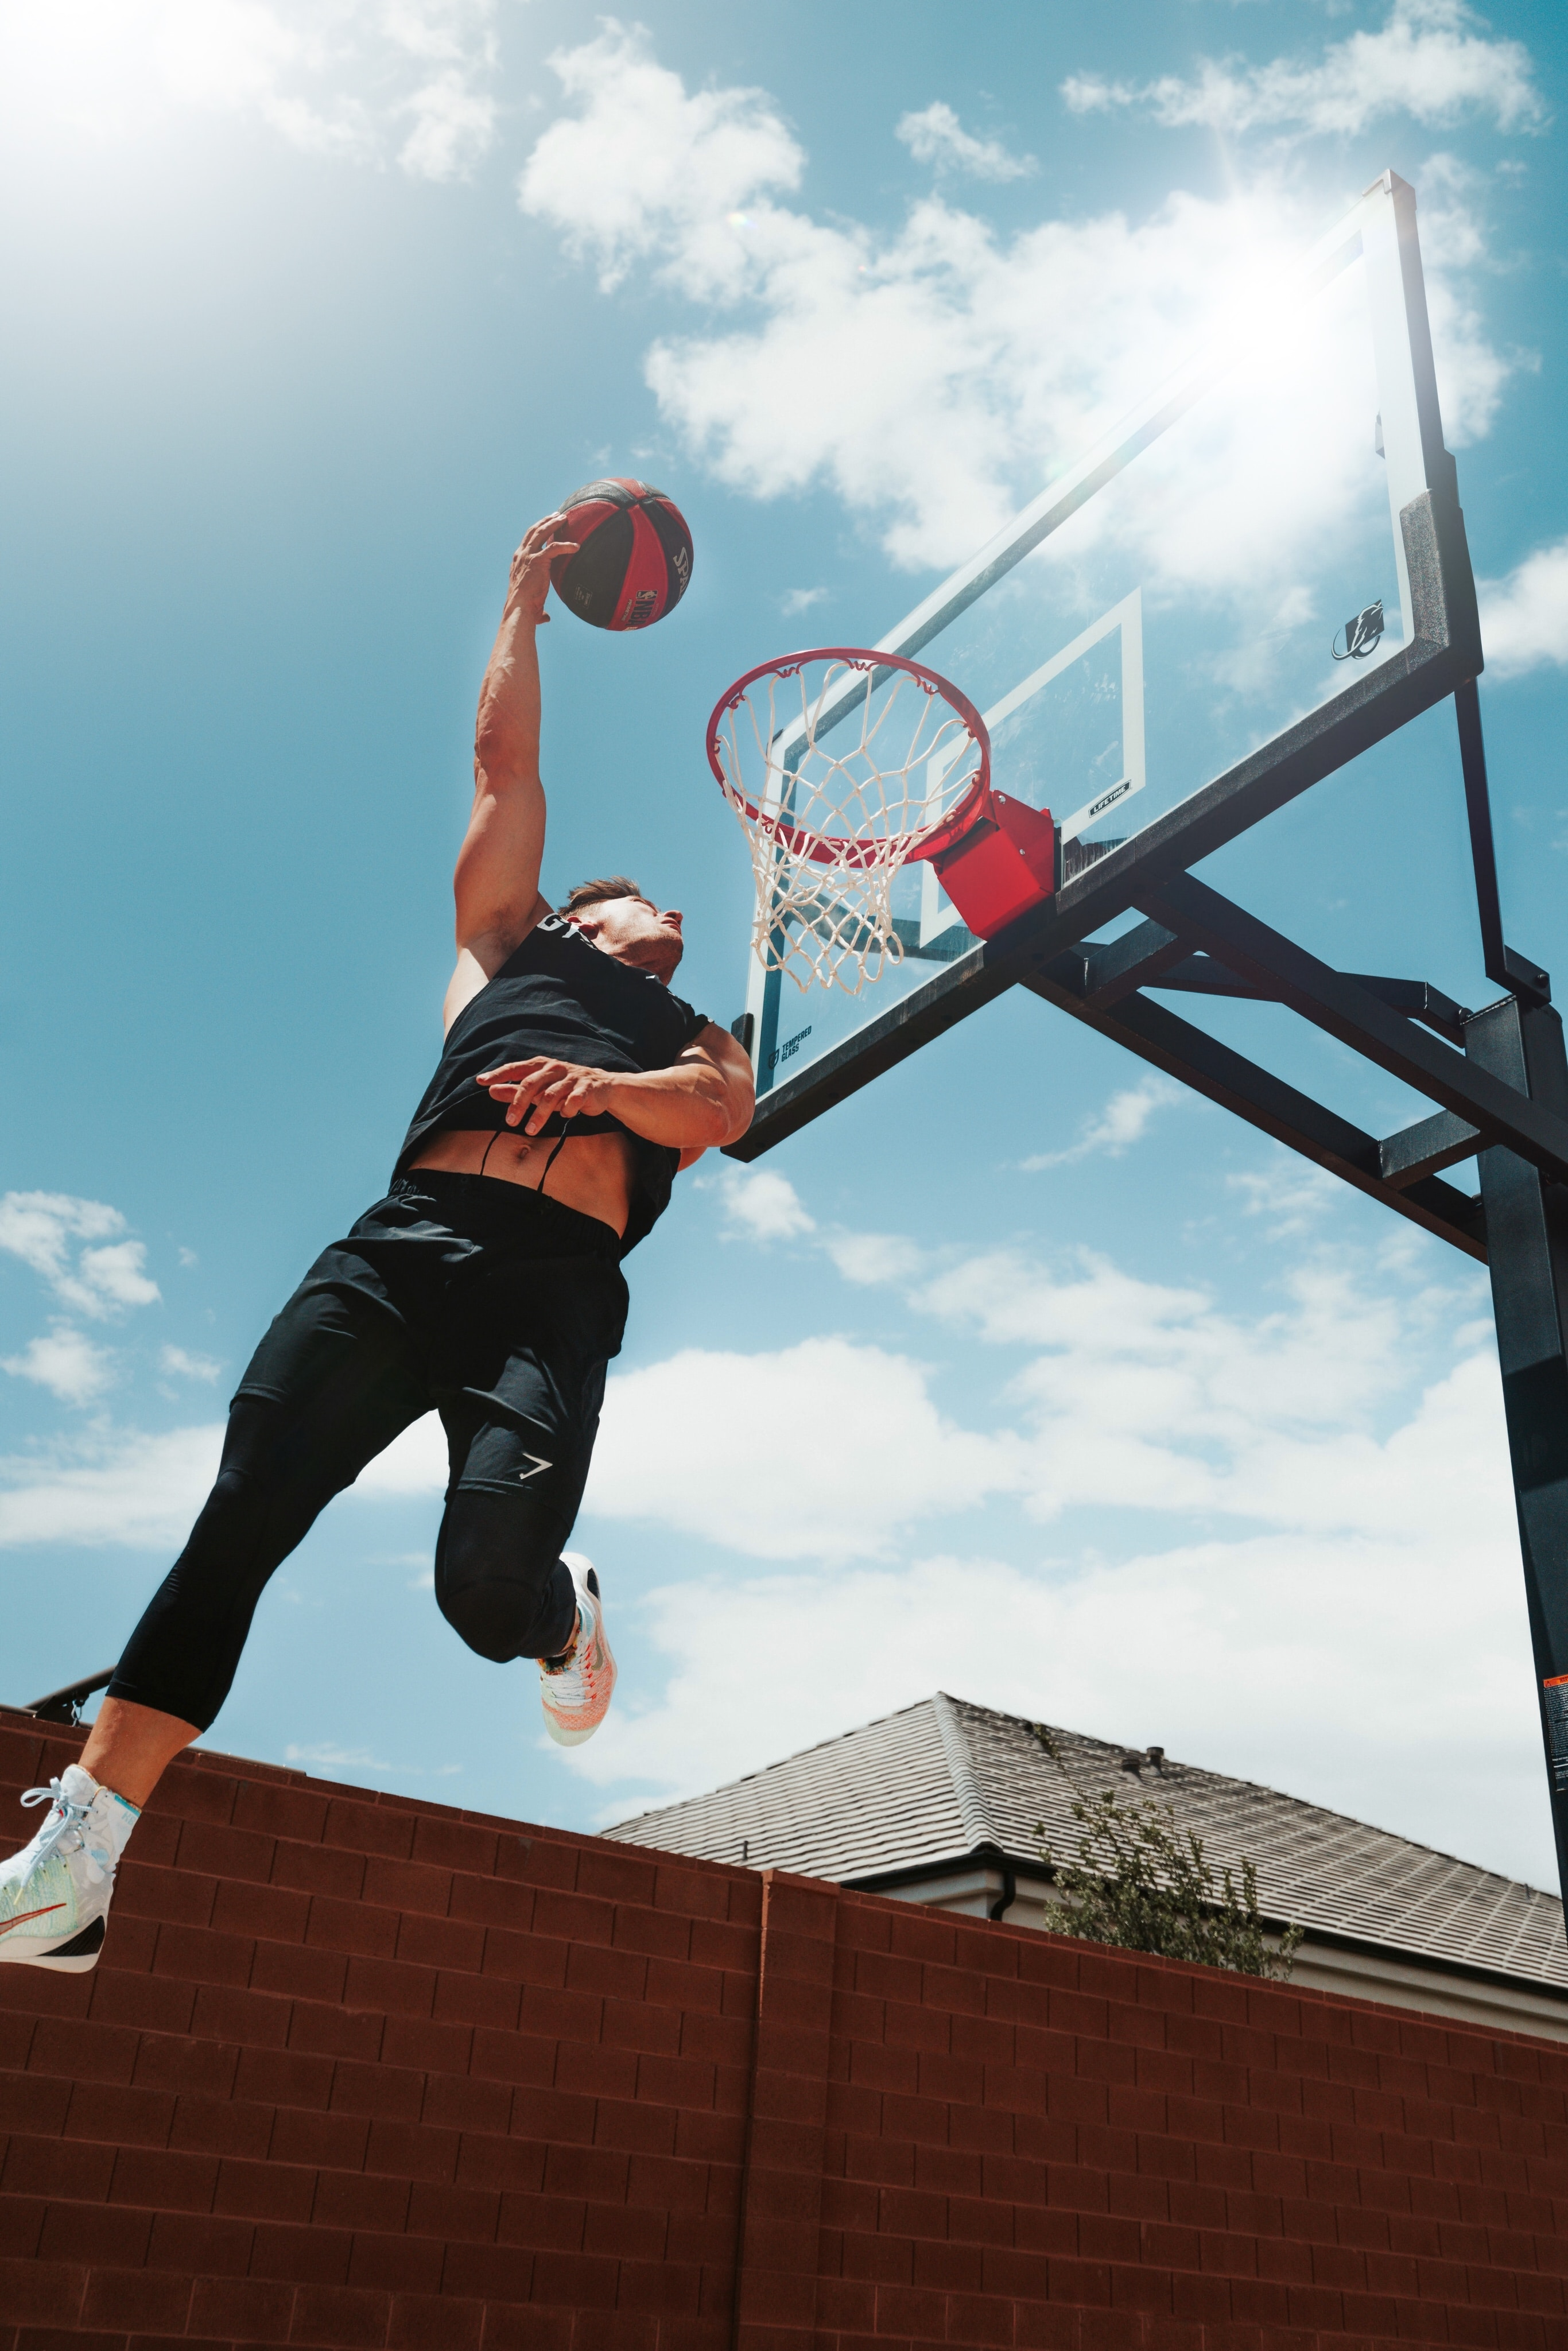 An in-depth review of the best basketball socks available in 2019.